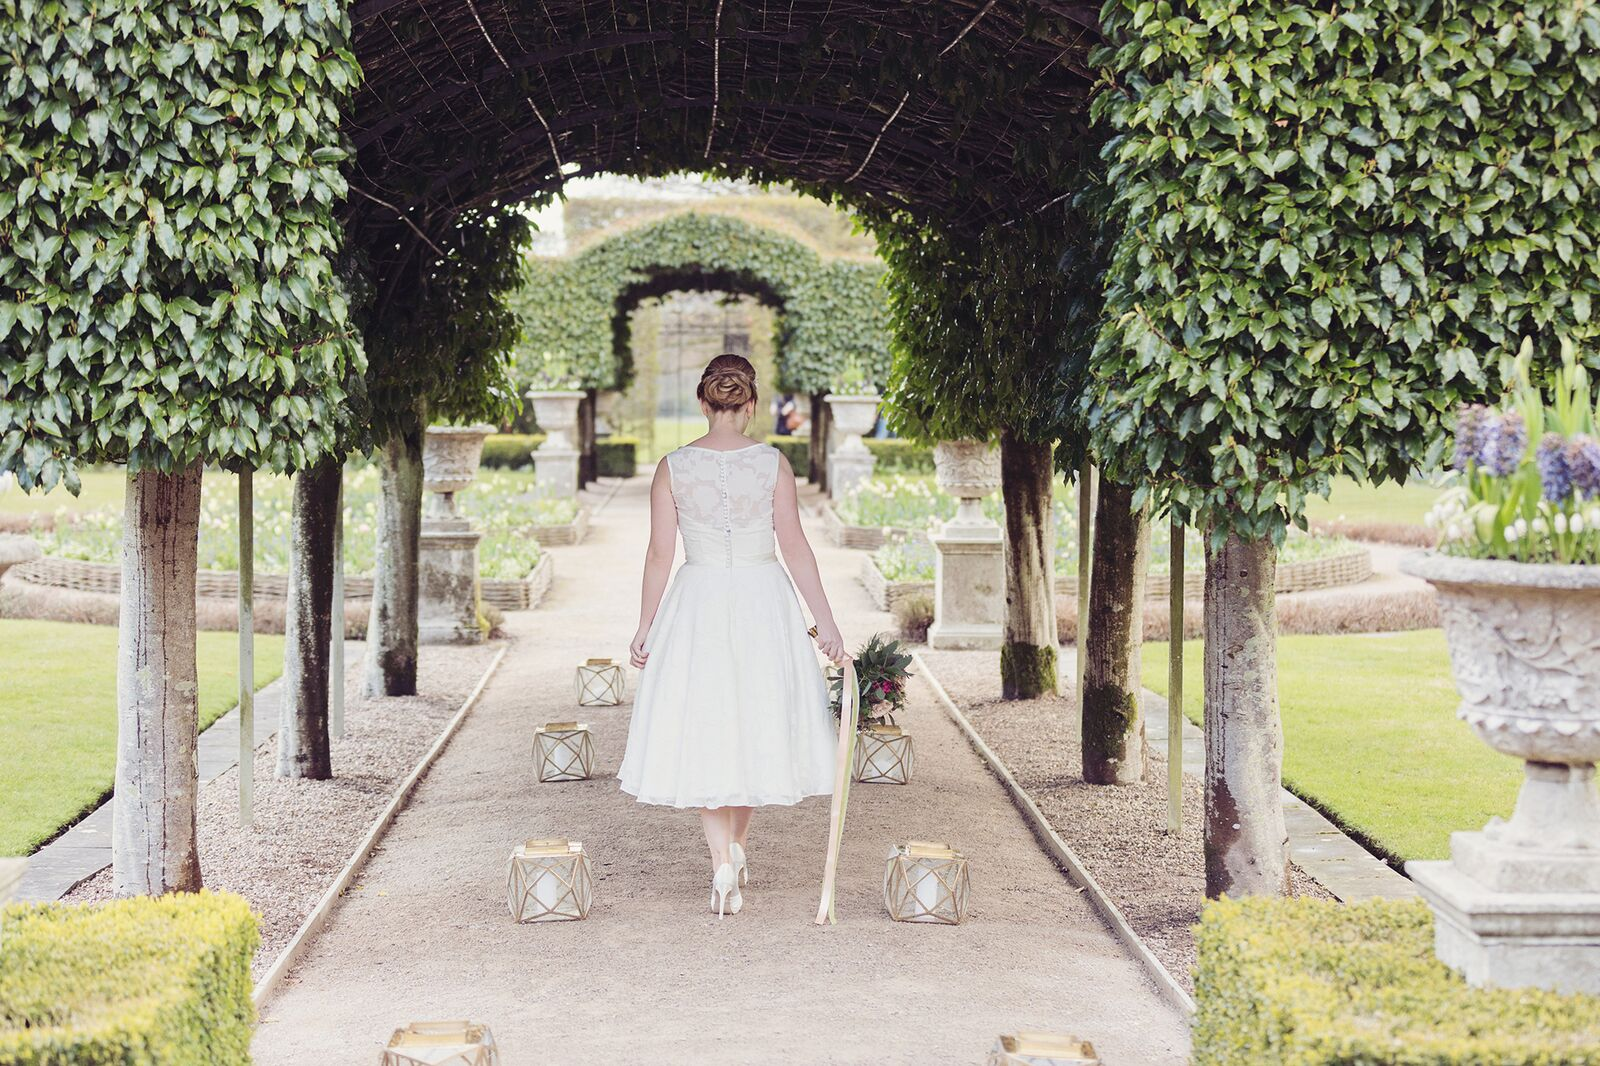 Holker bride in garden 2.jpg